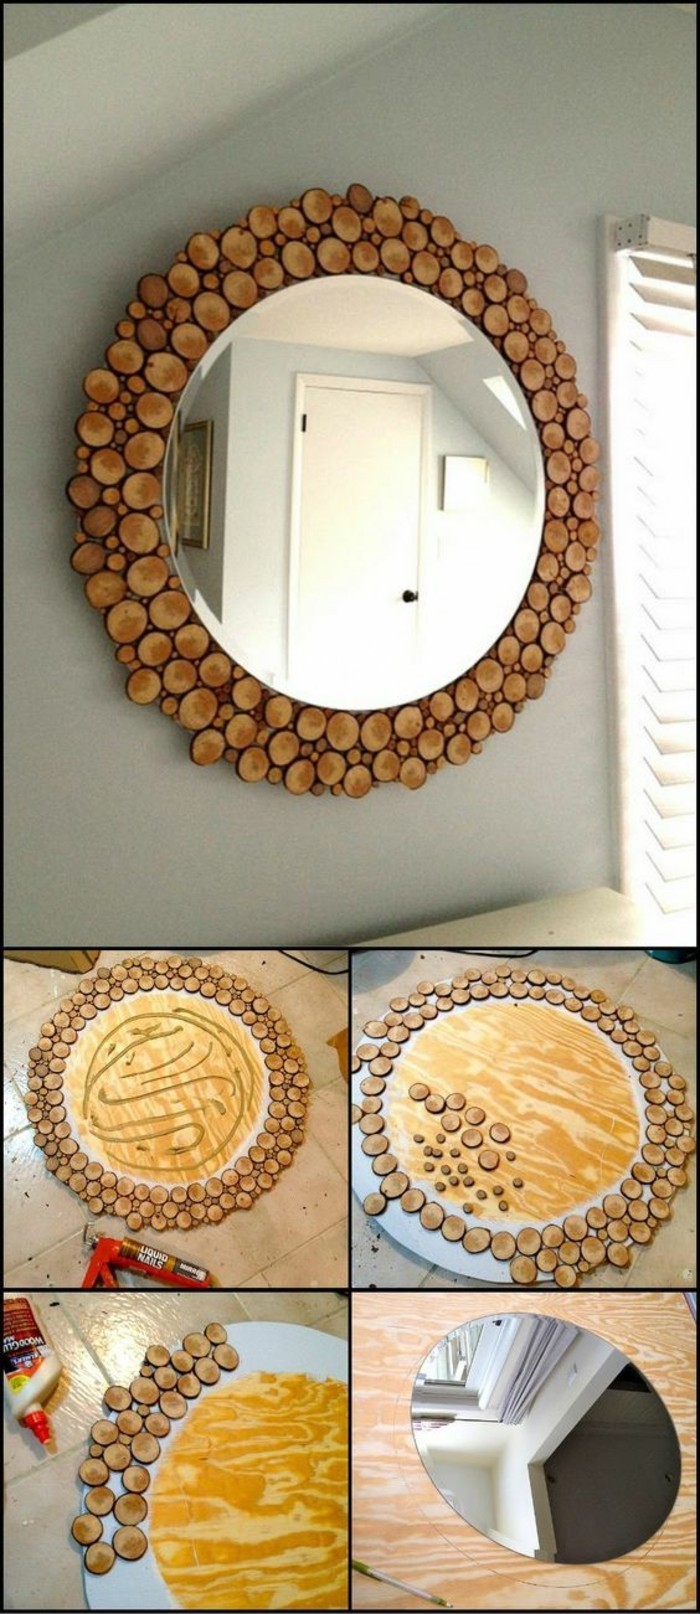 large round window, wood pieces, glued together, forming a mirror frame, big wall decor, diy tutorial